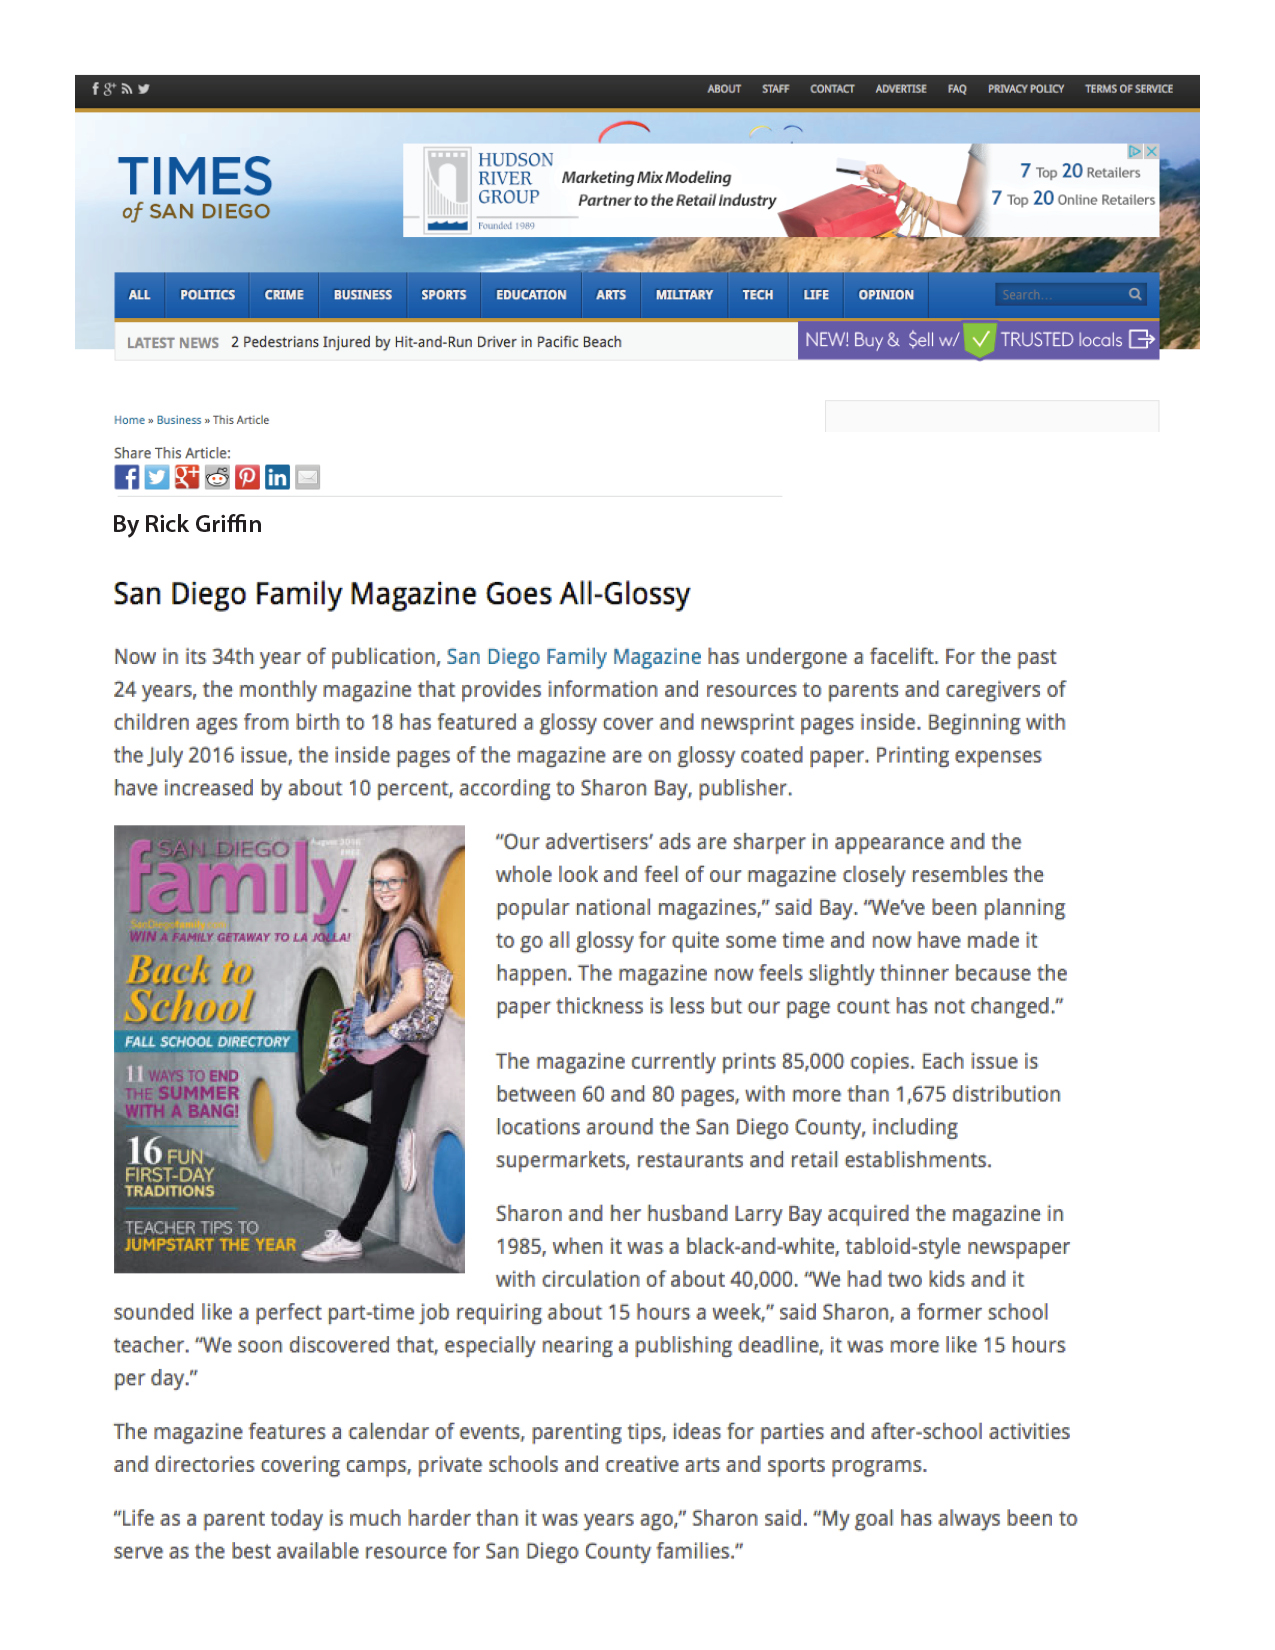 Artilcle about San Diego Family Magazine new glossy look.